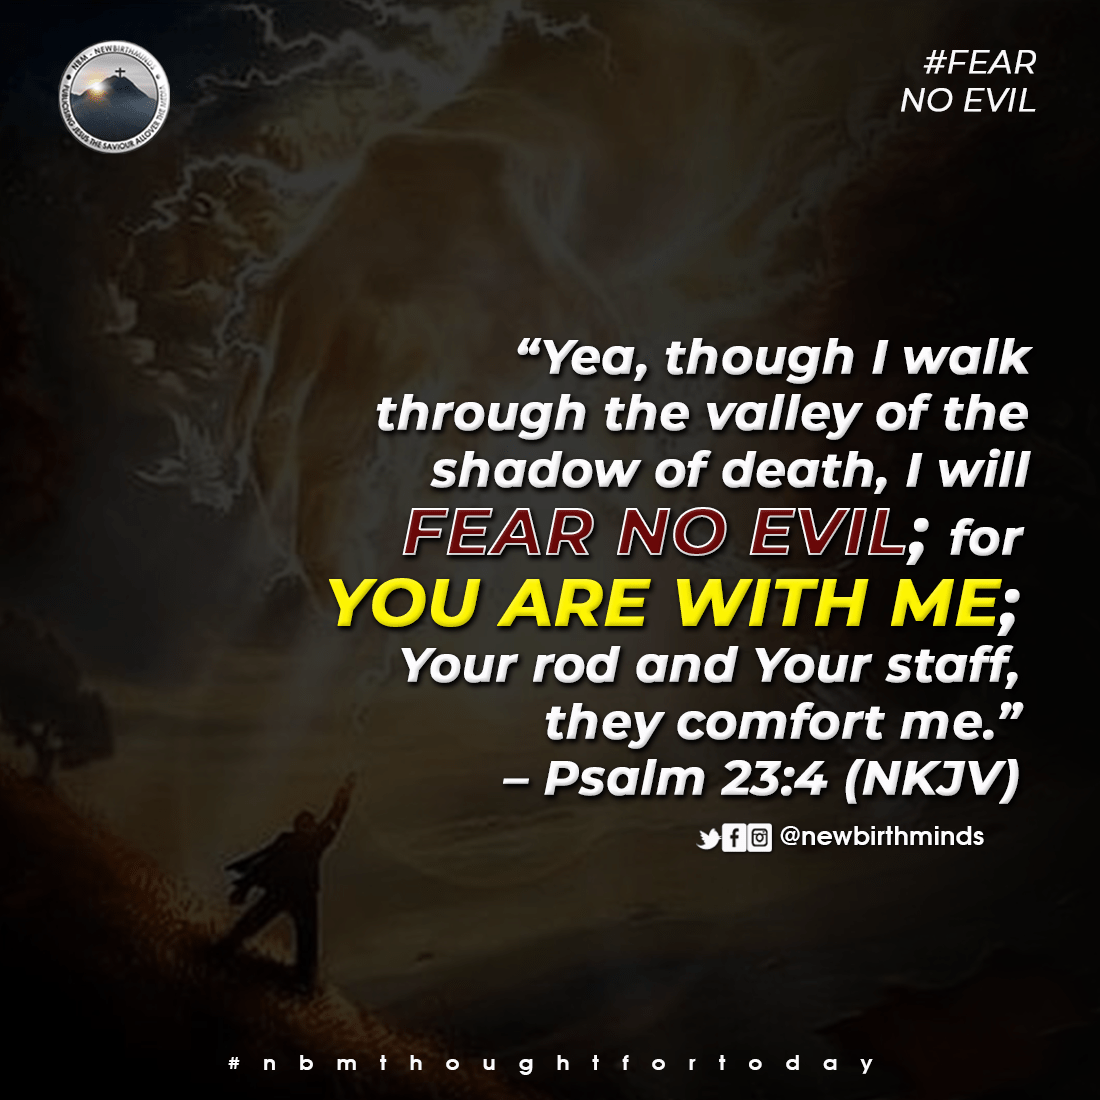 FEAR NO EVIL; FOR I AM WITH YOU